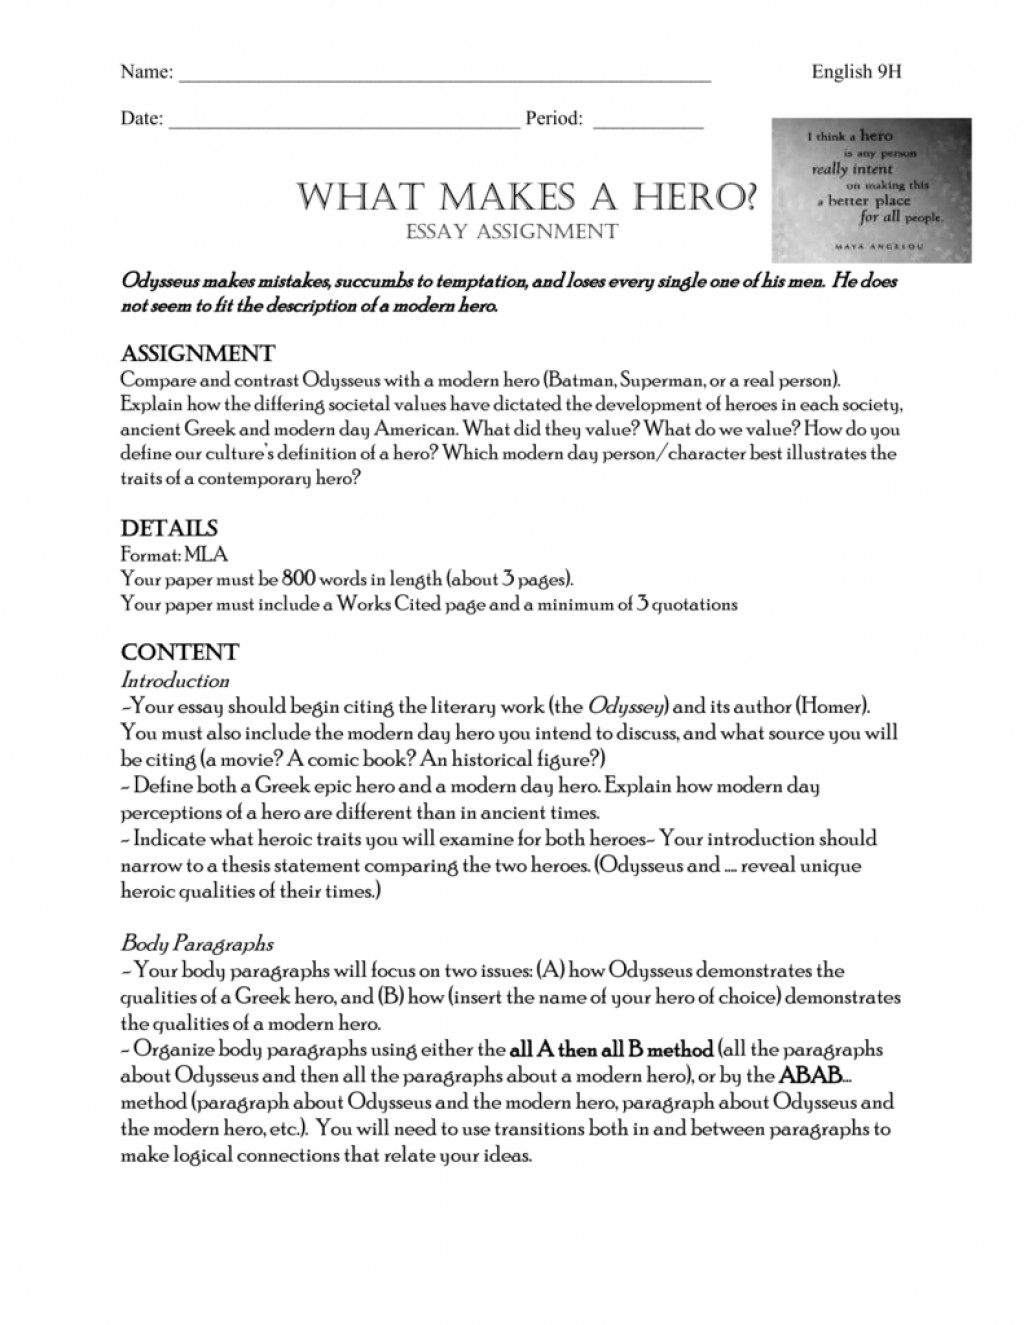 015 What Does It Mean To Hero Essay 009252566 1 Excellent Be A Large